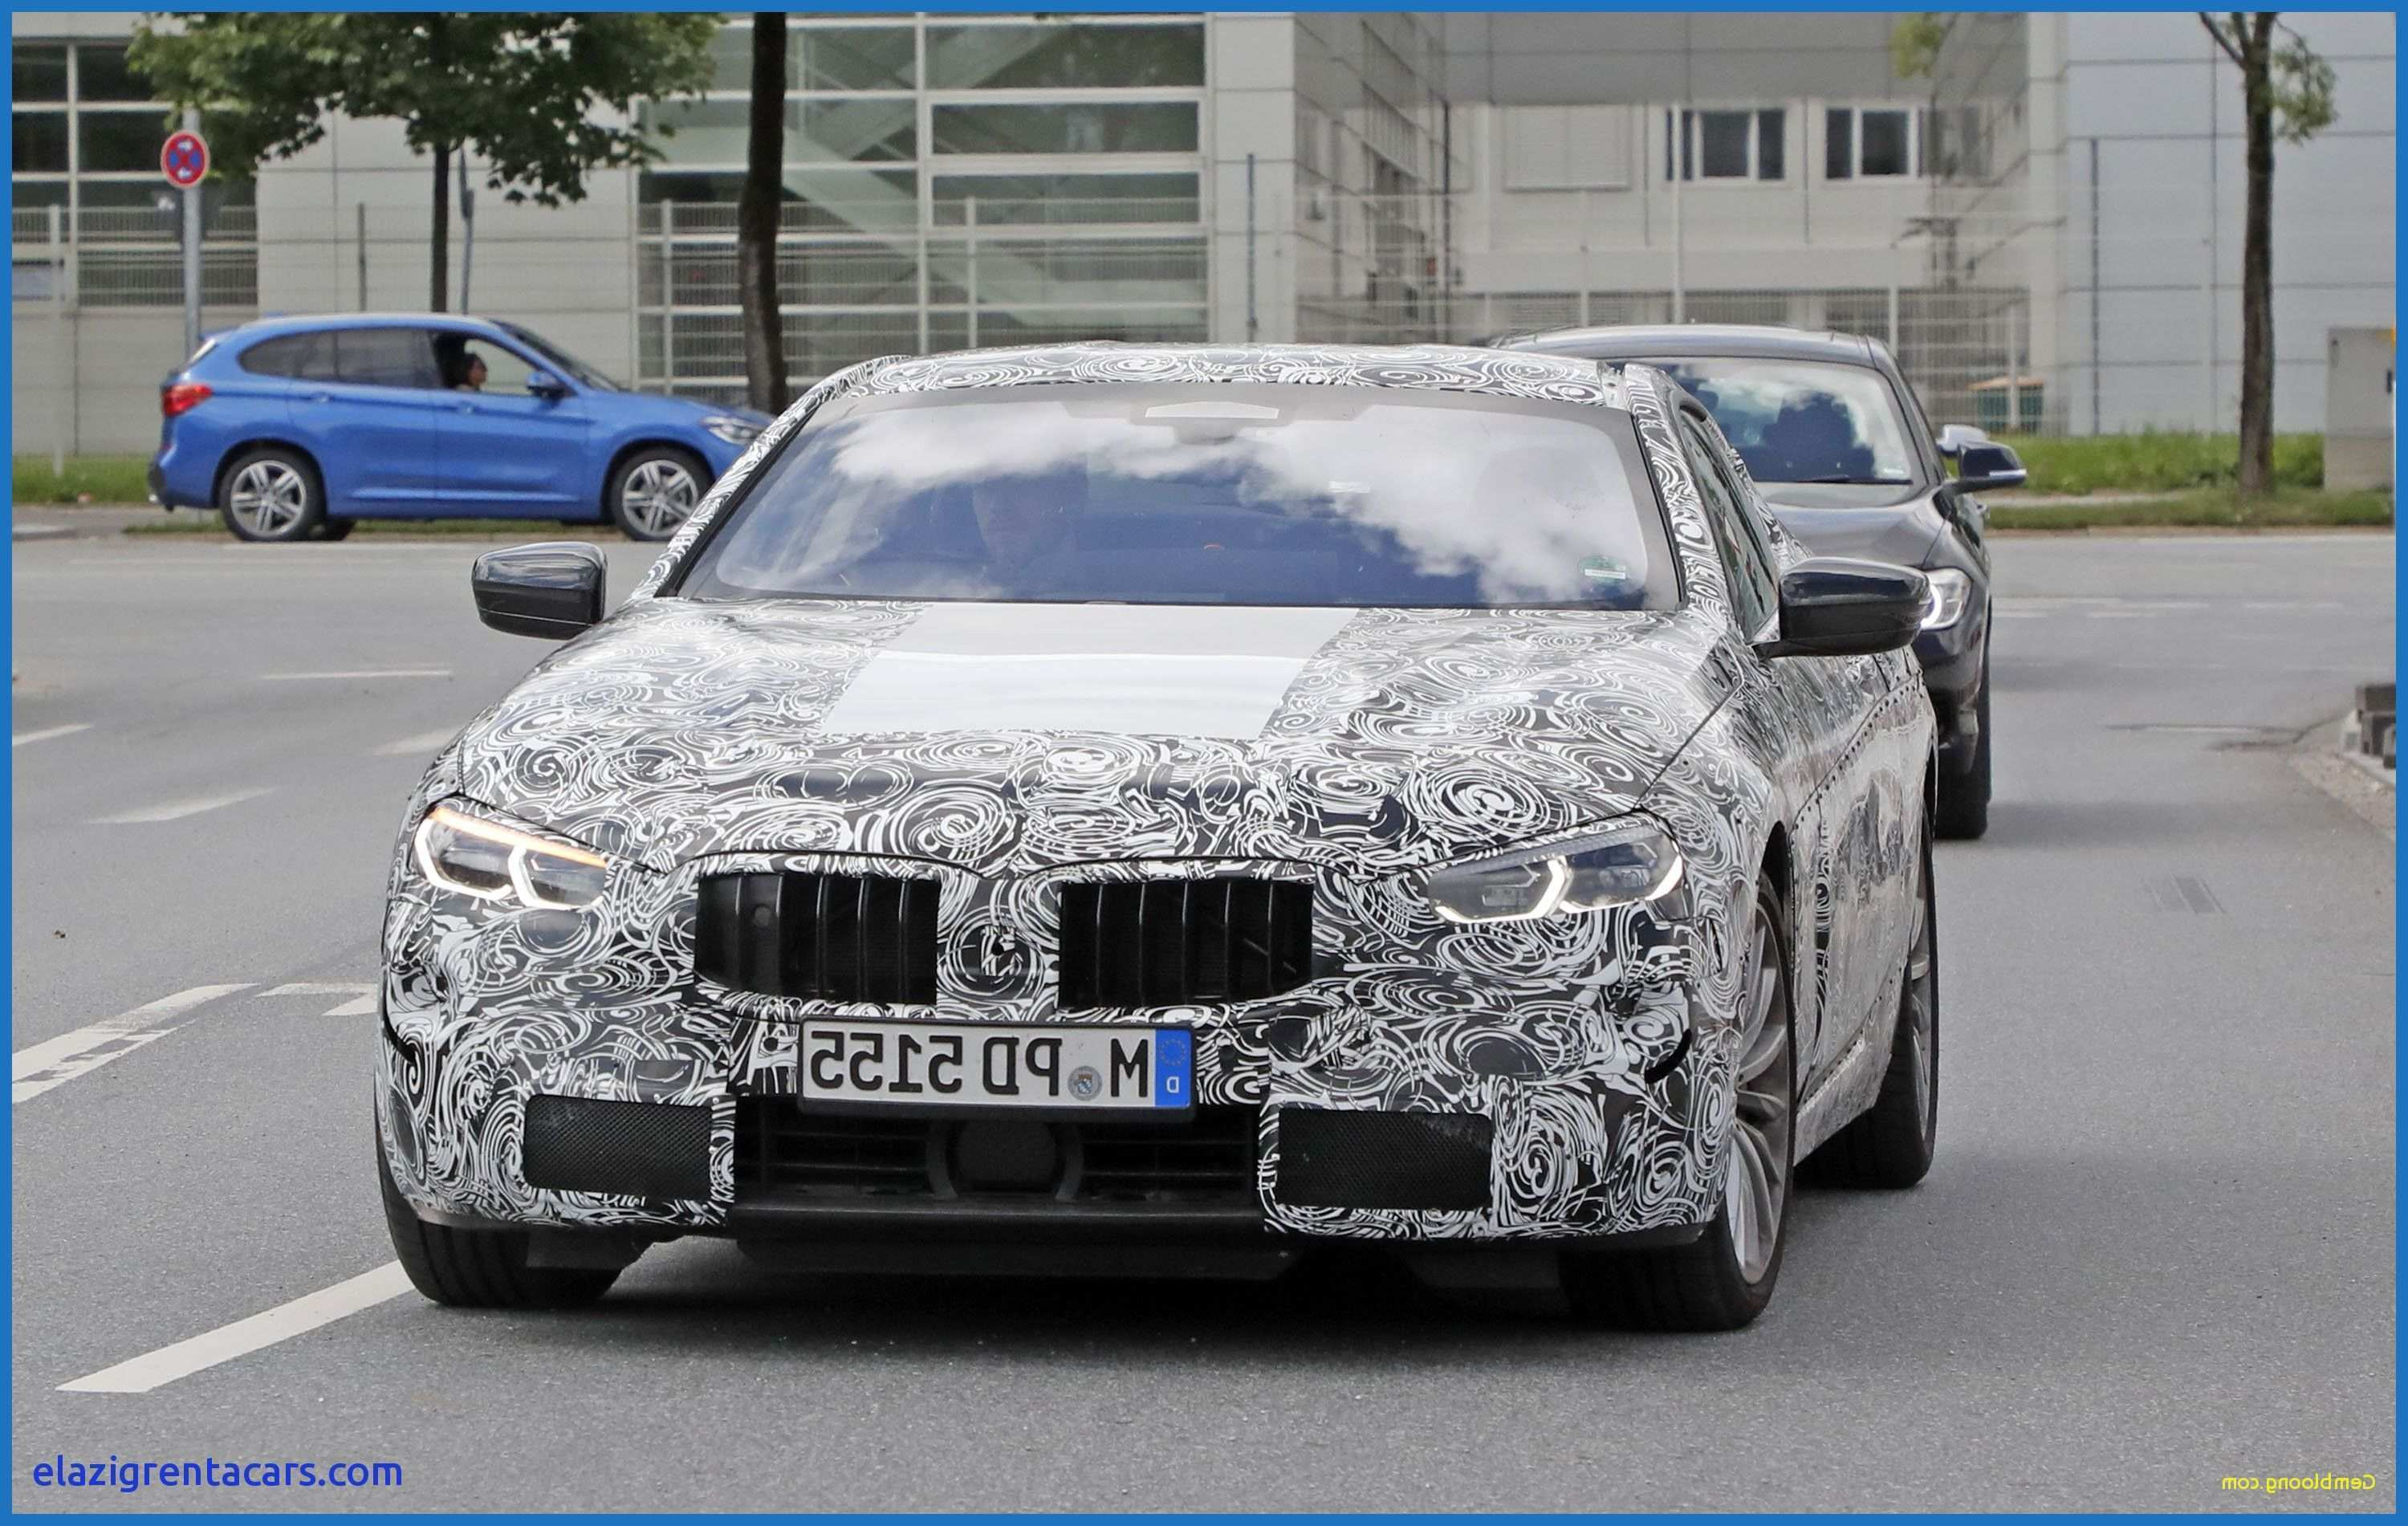 46 All New 2019 Bmw 7 Series Perfection New Concept And Review